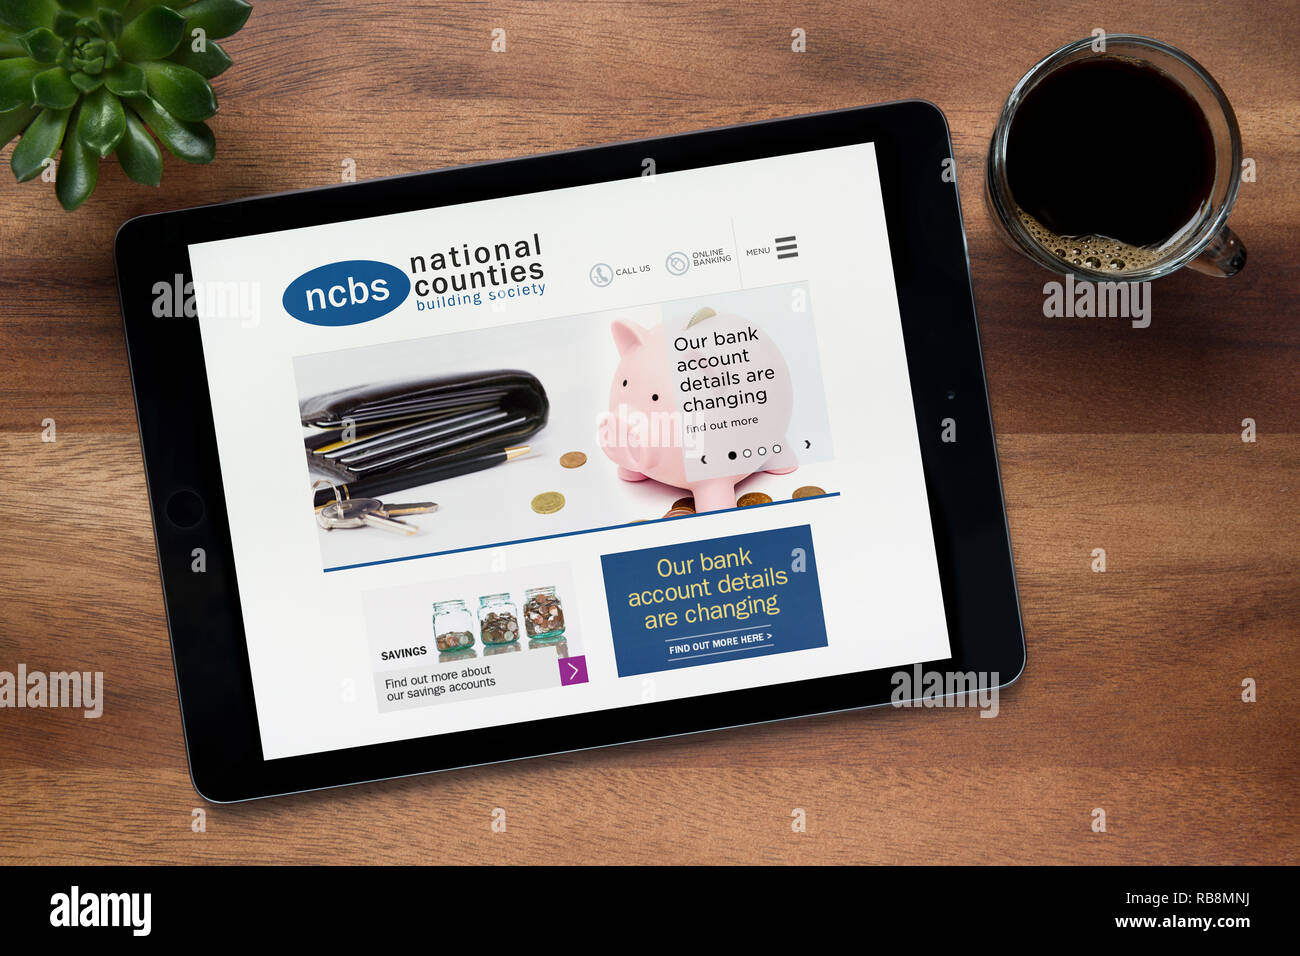 The website of National Counties Building Society is seen on an iPad tablet resting on a wooden table (Editorial use only). - Stock Image